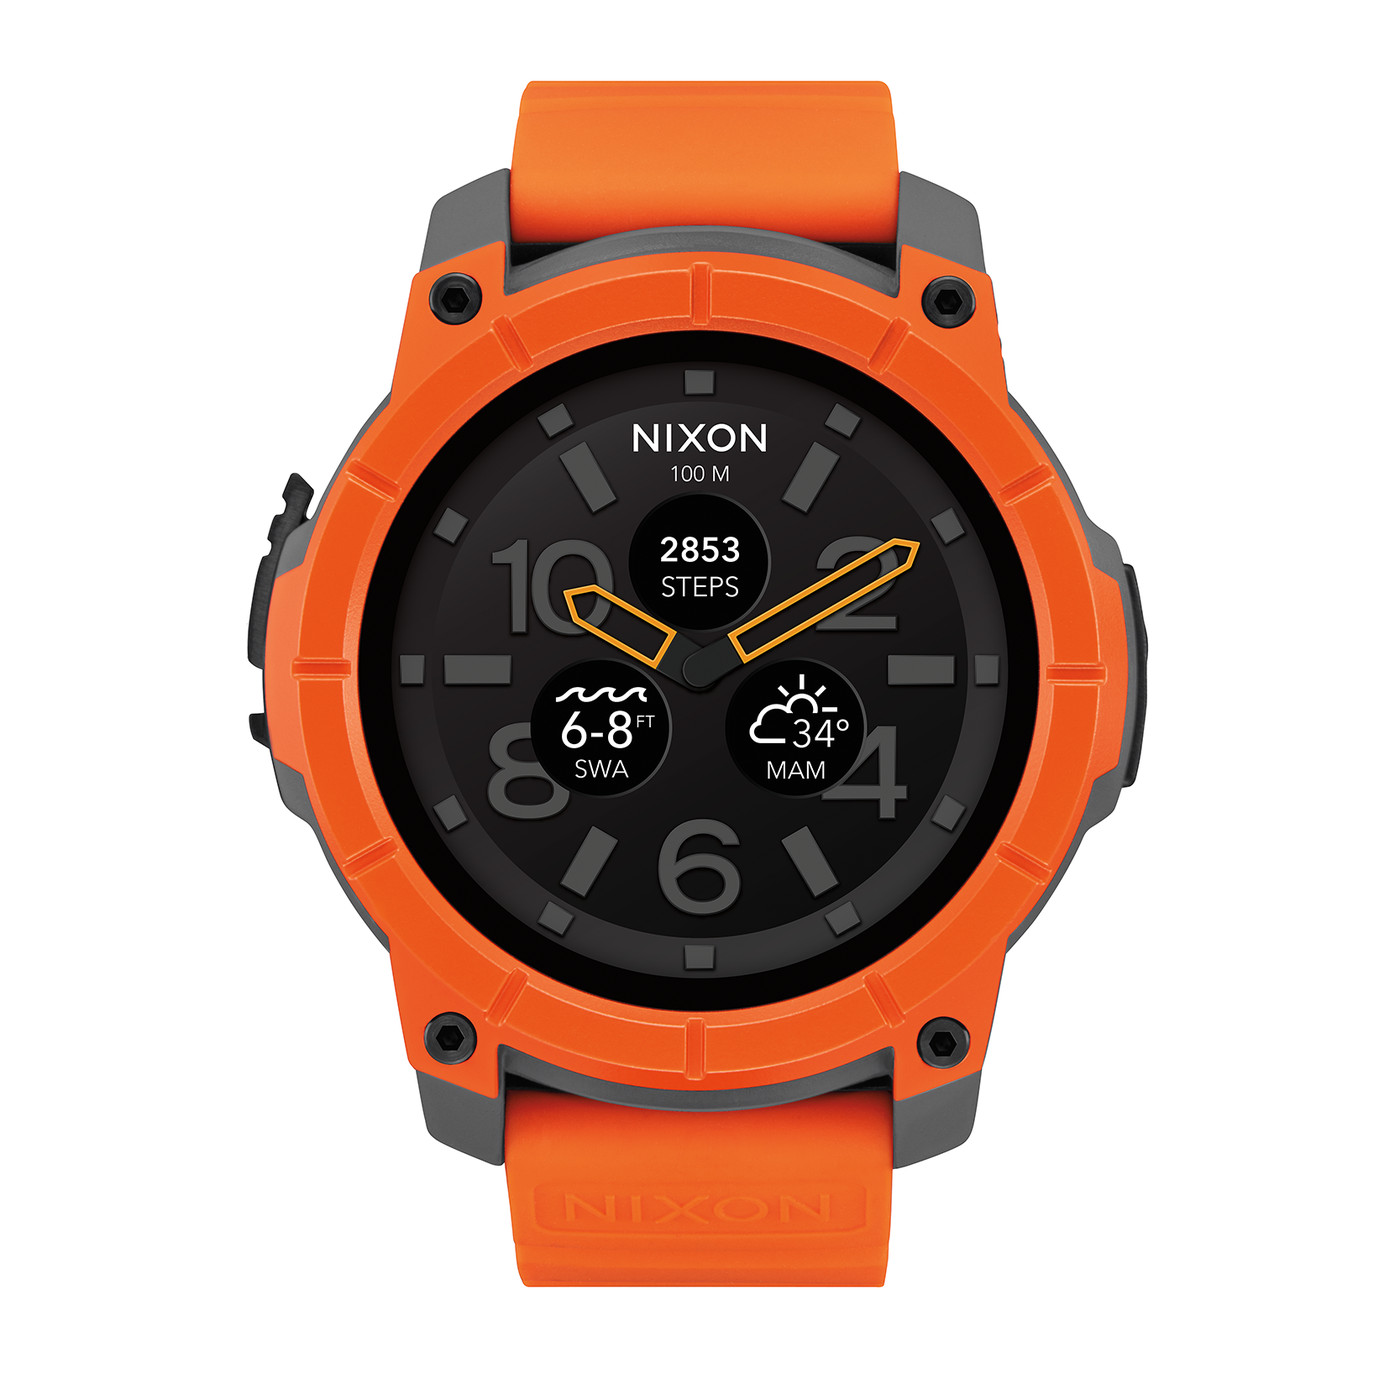 gallery gizmodo australia sport is watches best the what watch inpiration workout smart fitness